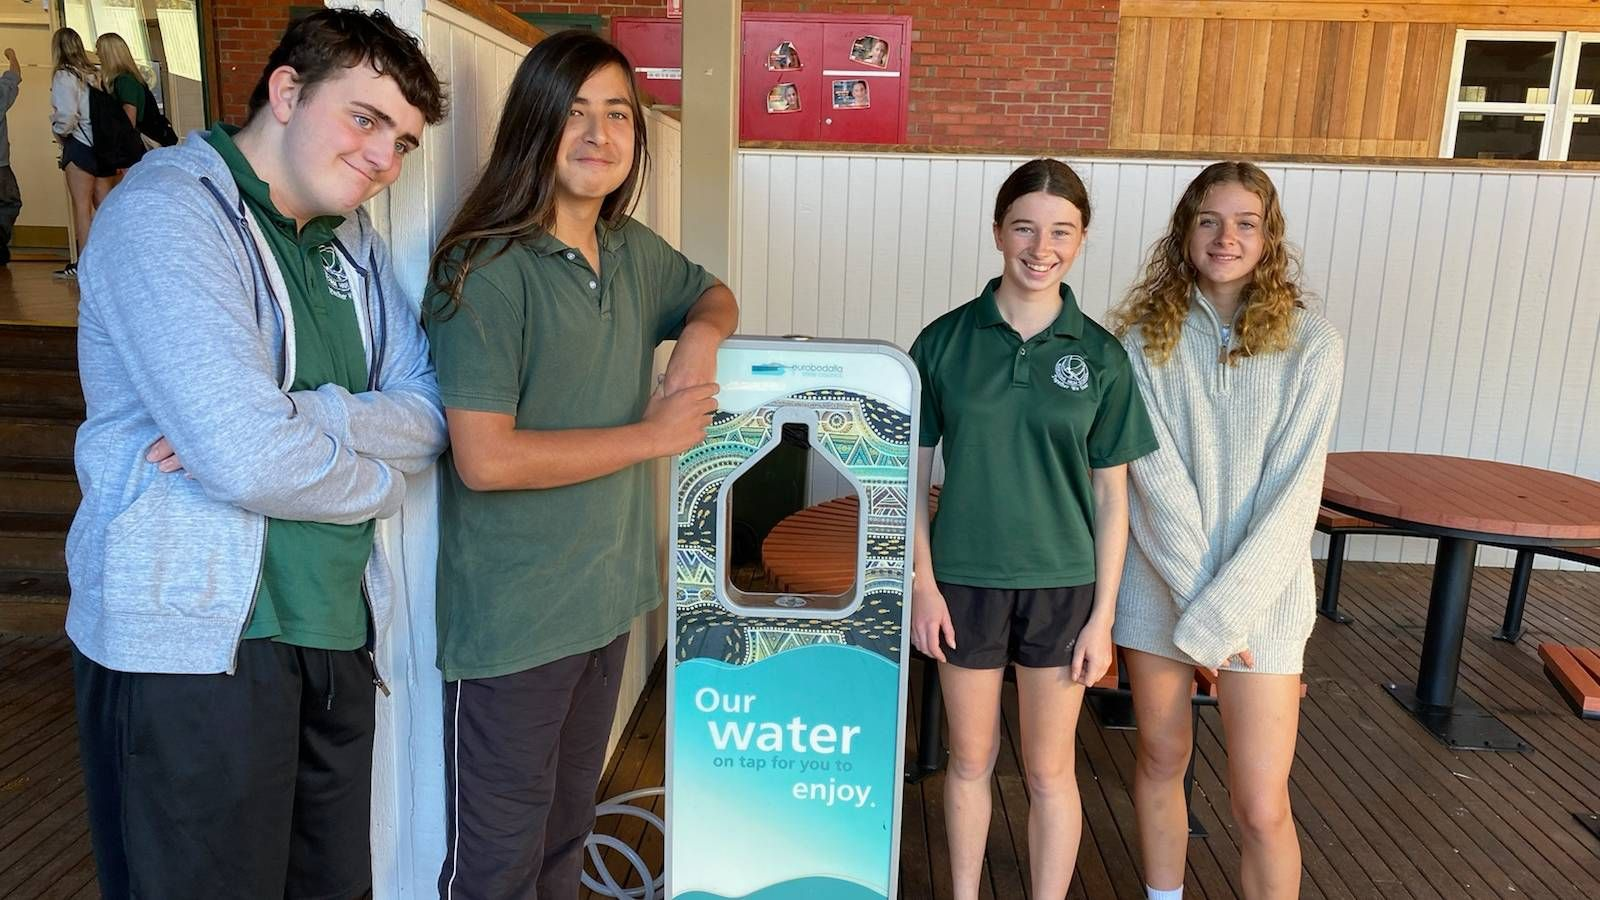 Four high school students standing next to a Council water dispenser banner image